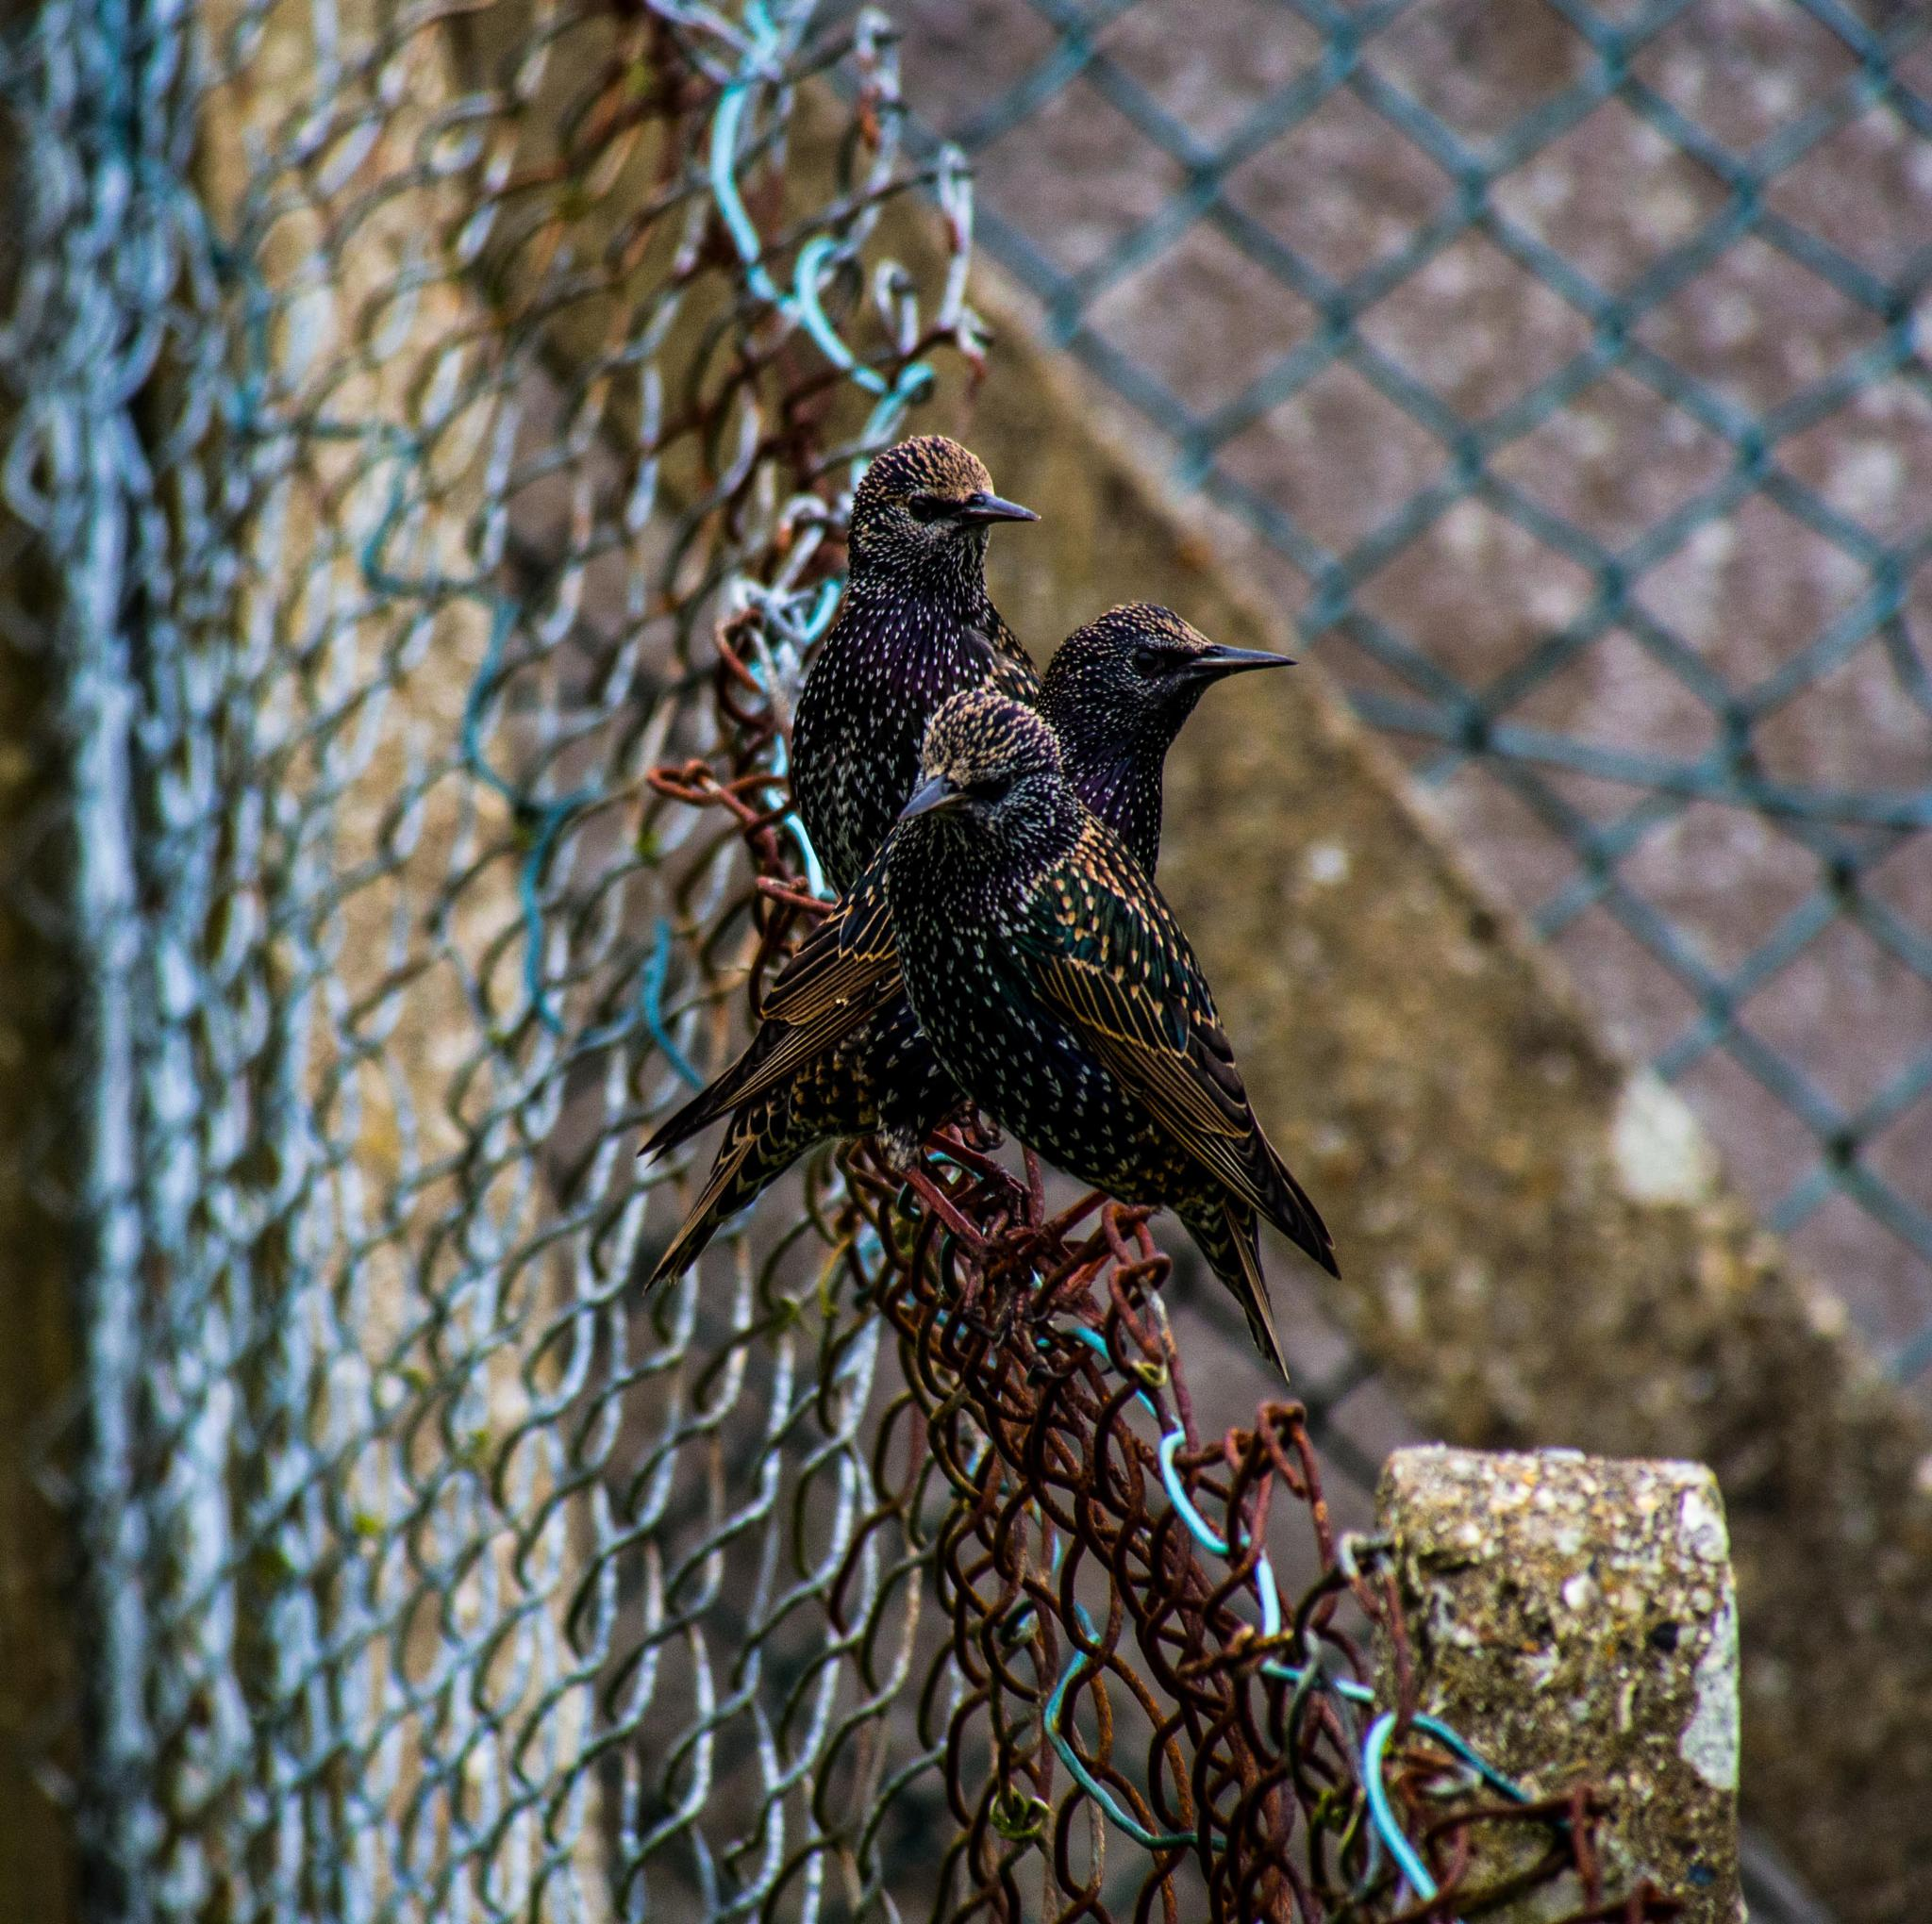 Sitting on the fence by darron.sandell